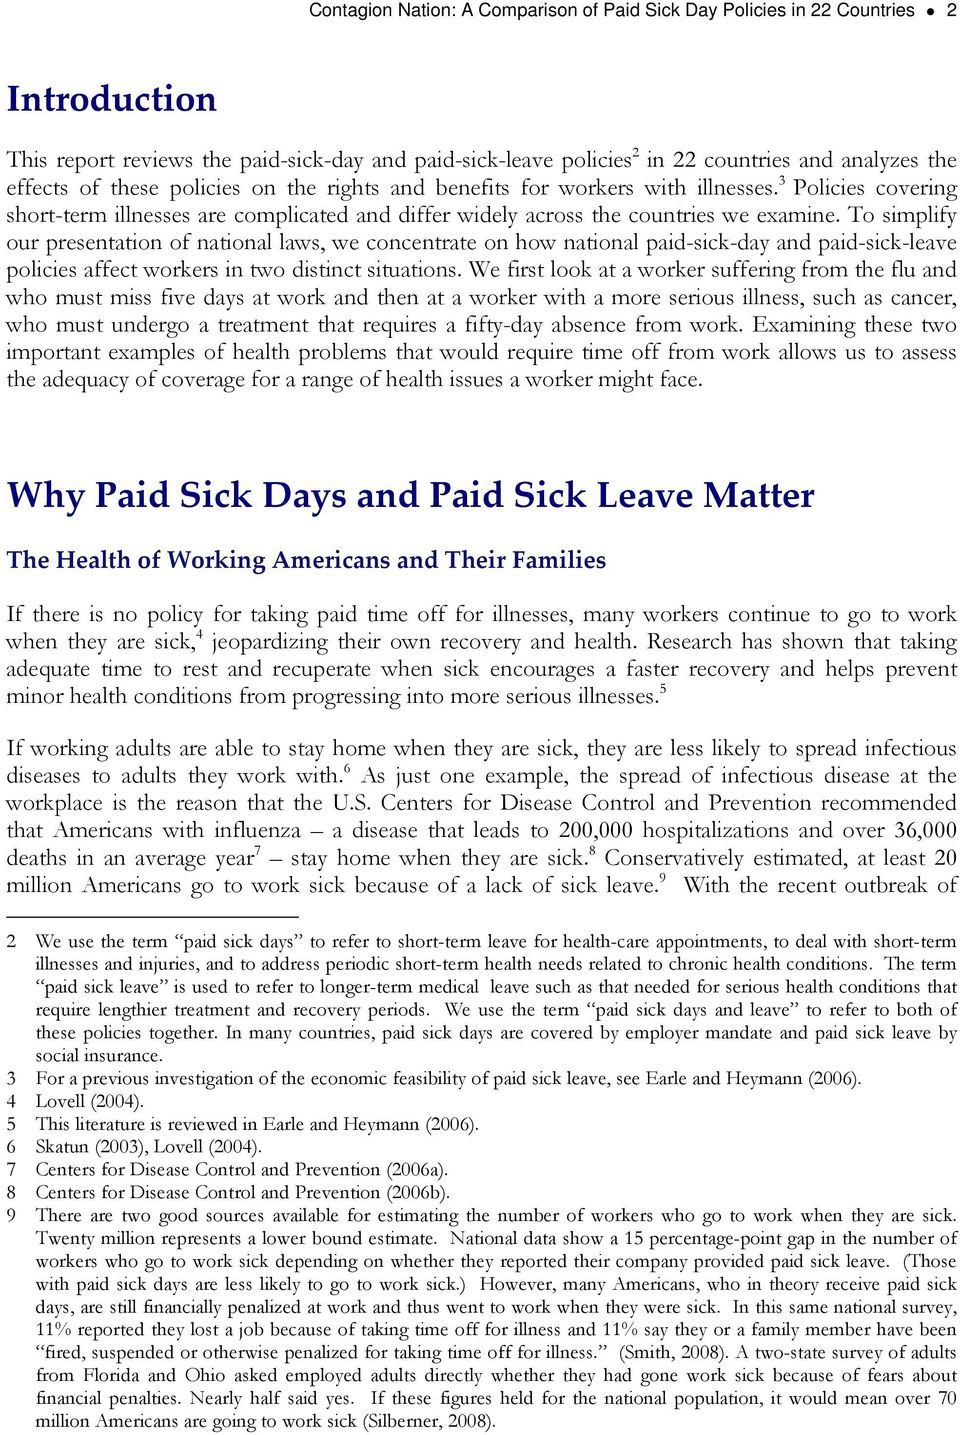 To simplify our presentation of national laws, we concentrate on how national paid-sick-day and paid-sick-leave policies affect workers in two distinct situations.